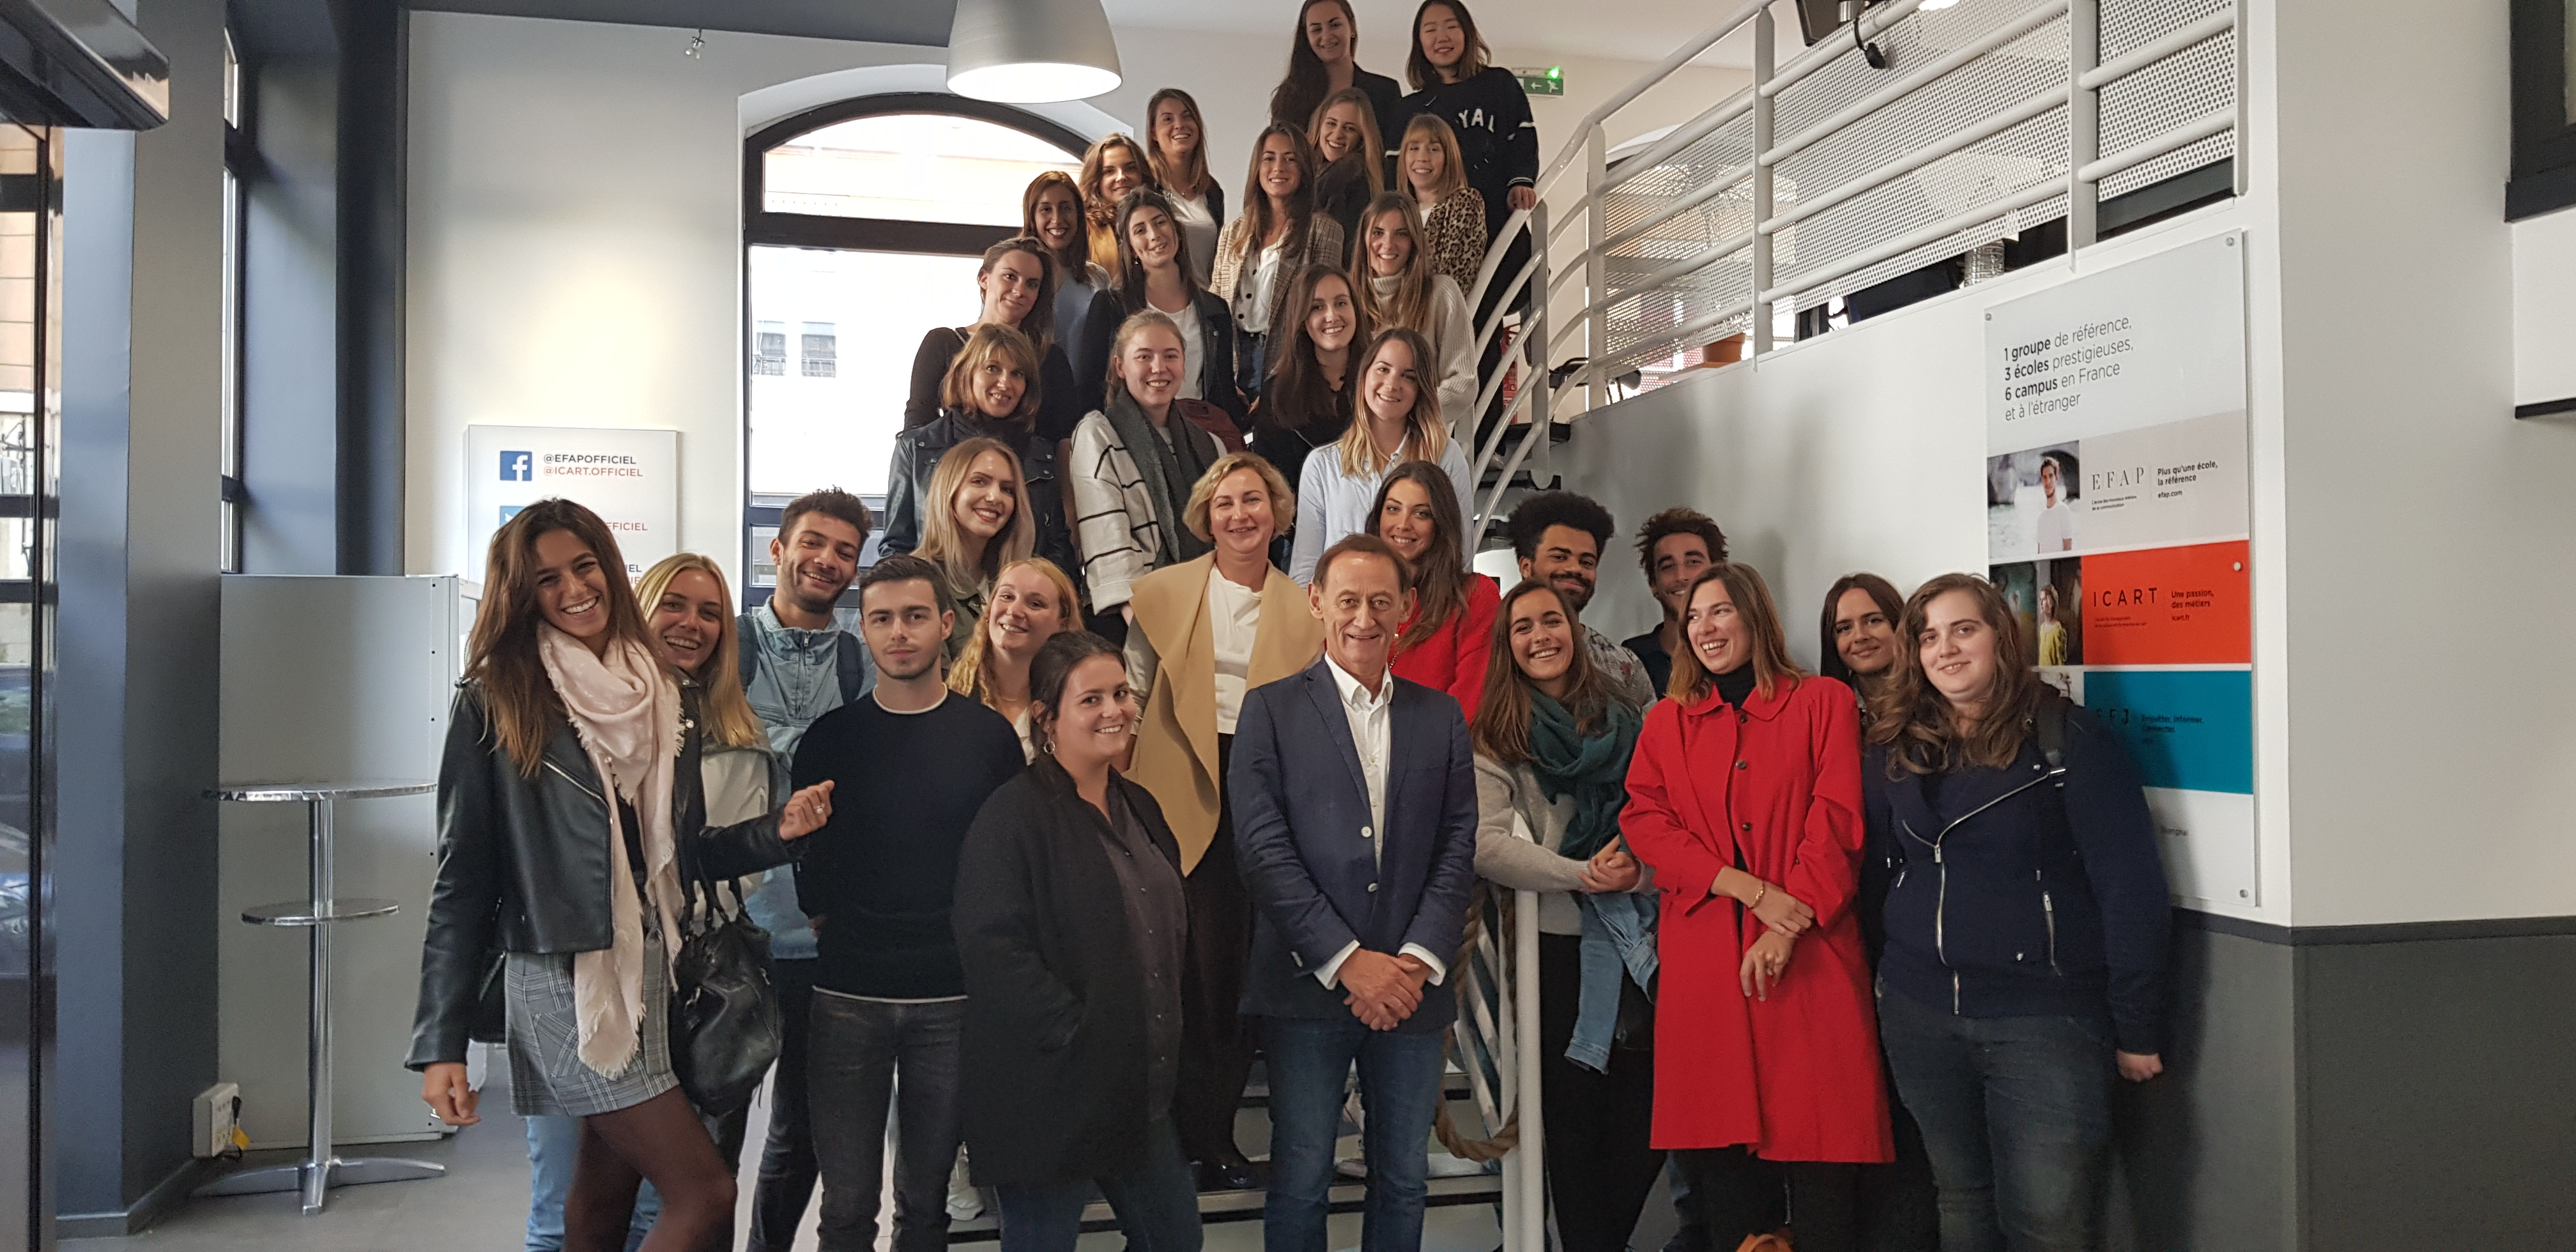 Master marketing à Lyon - La rentrée de la promotion 2019